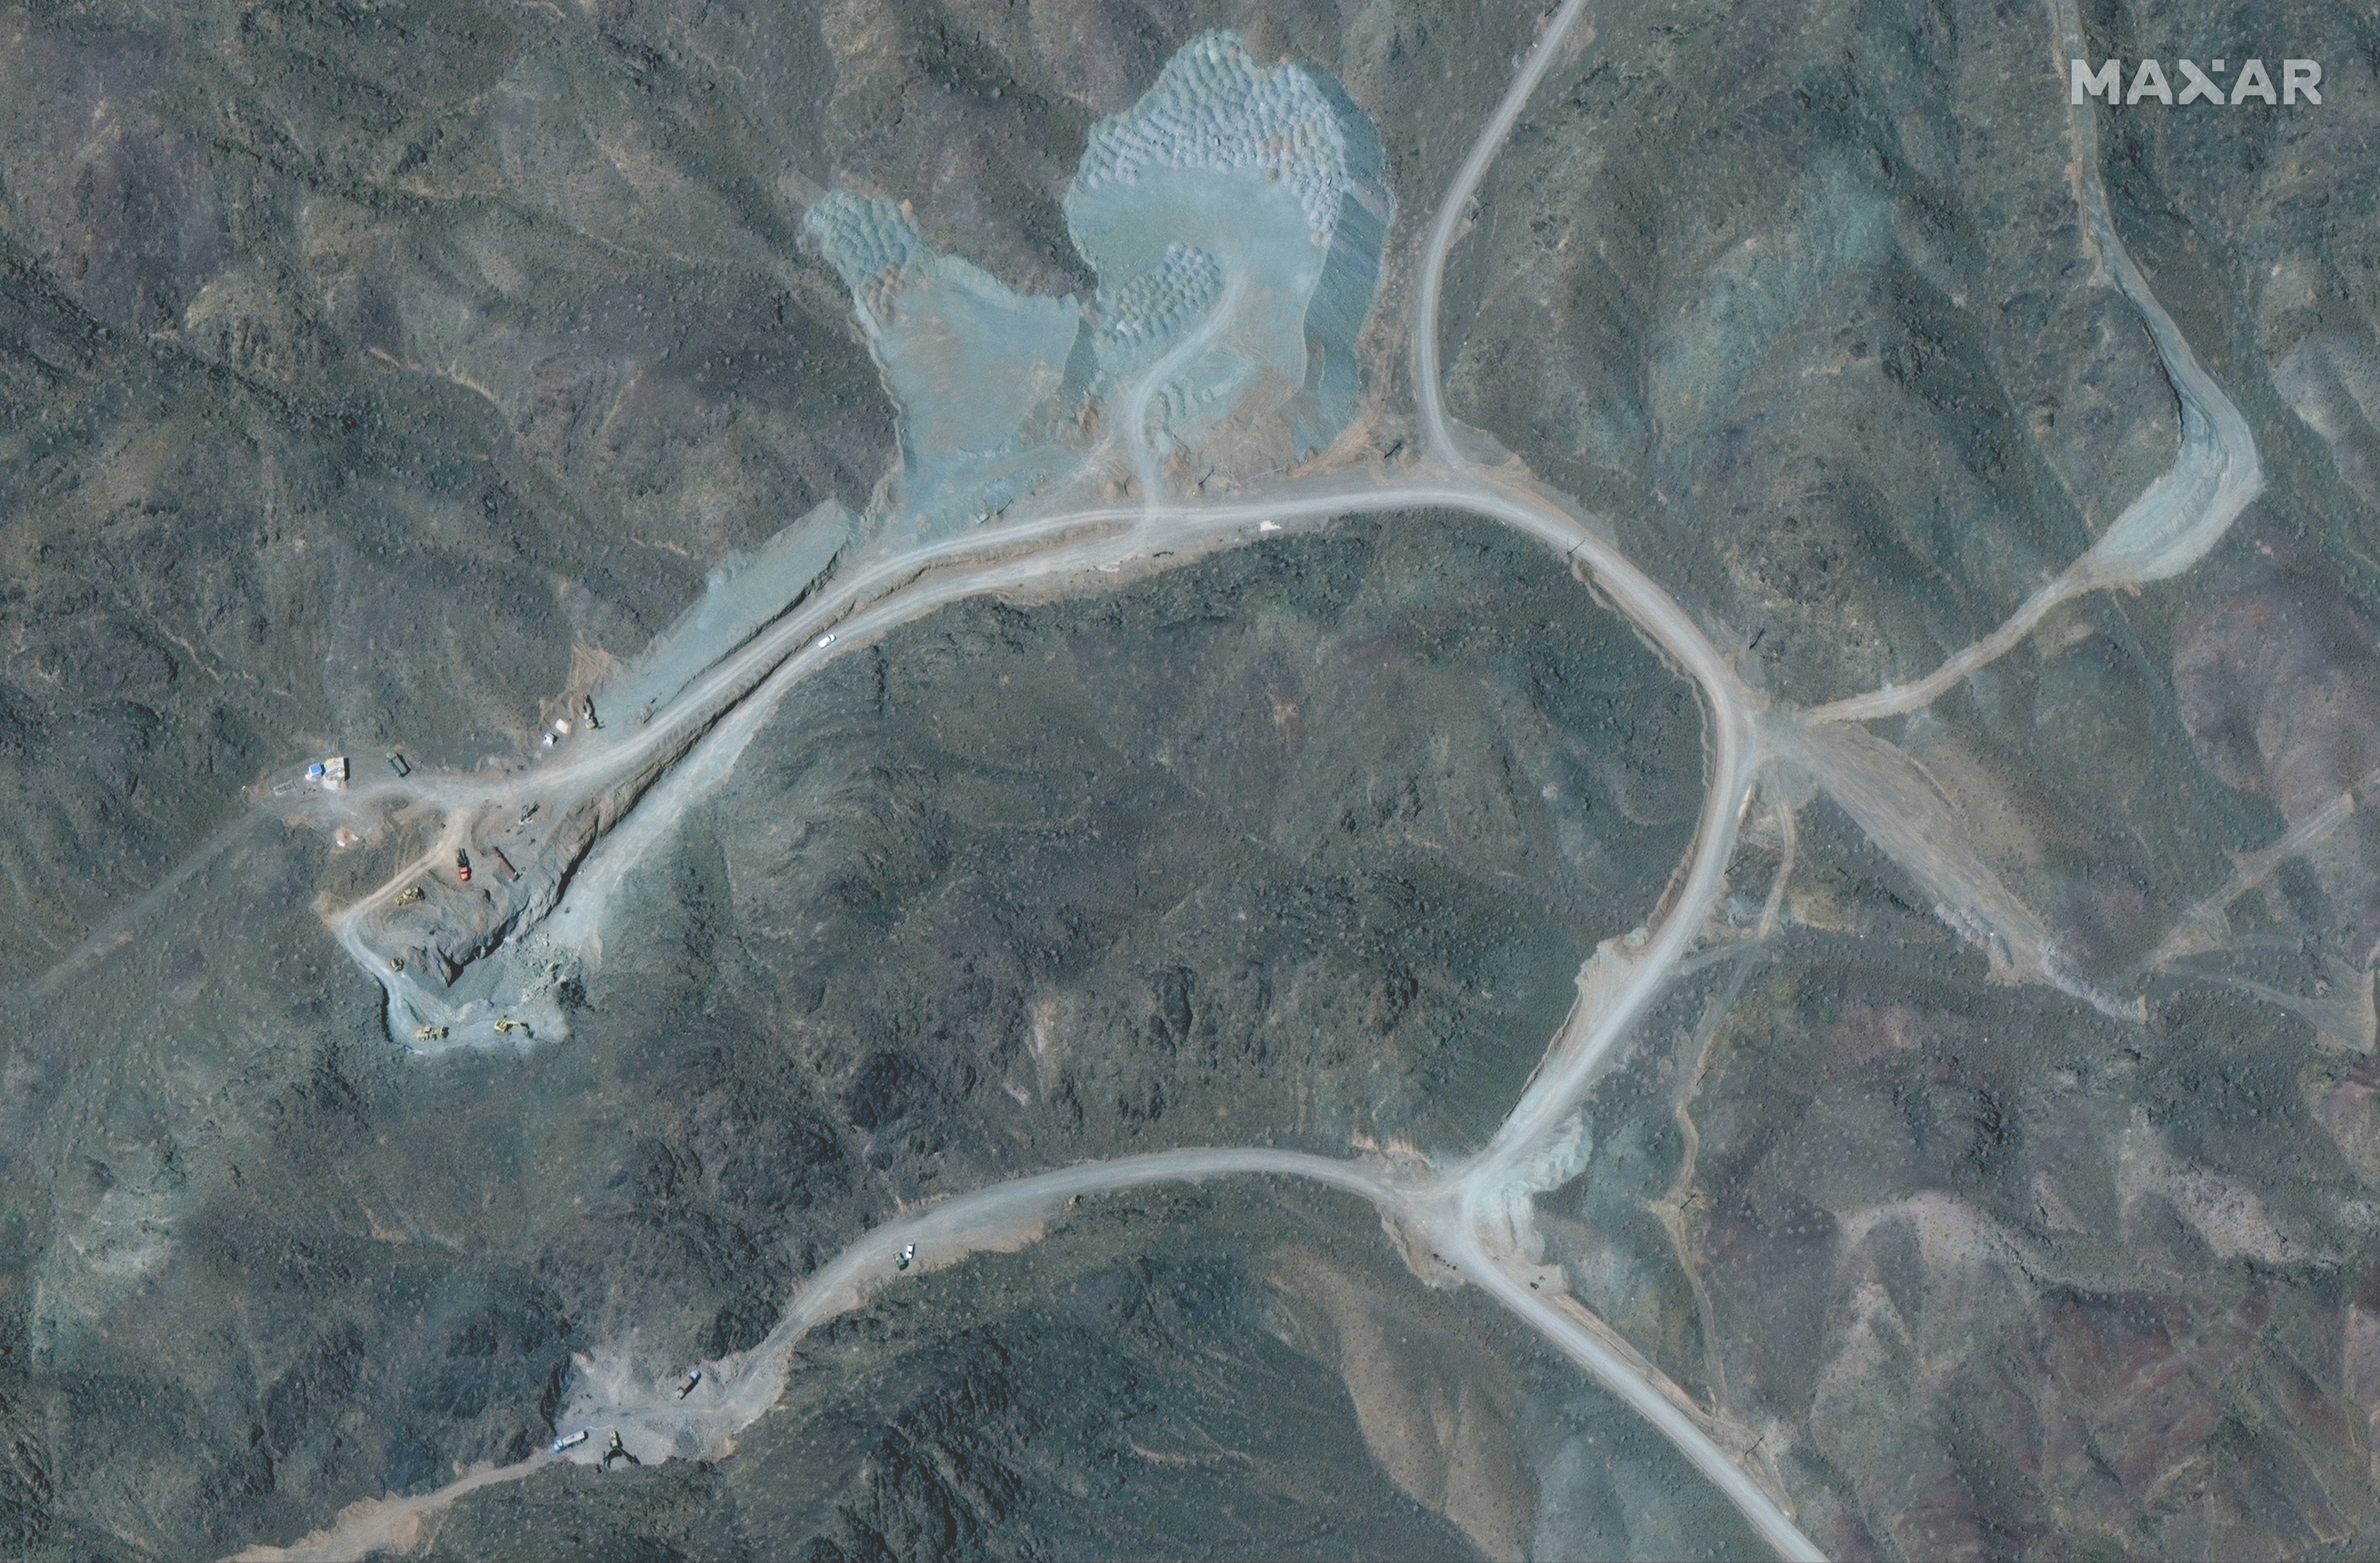 A view of the Natanz uranium enrichment facility 250 km (155 miles) south of the Iranian capital Tehran, in this Maxar Technologies satellite image taken last week and obtained by Reuters on April 12, 2021. Satellite image ©2021 Maxar Technologies/Handout via REUTERS